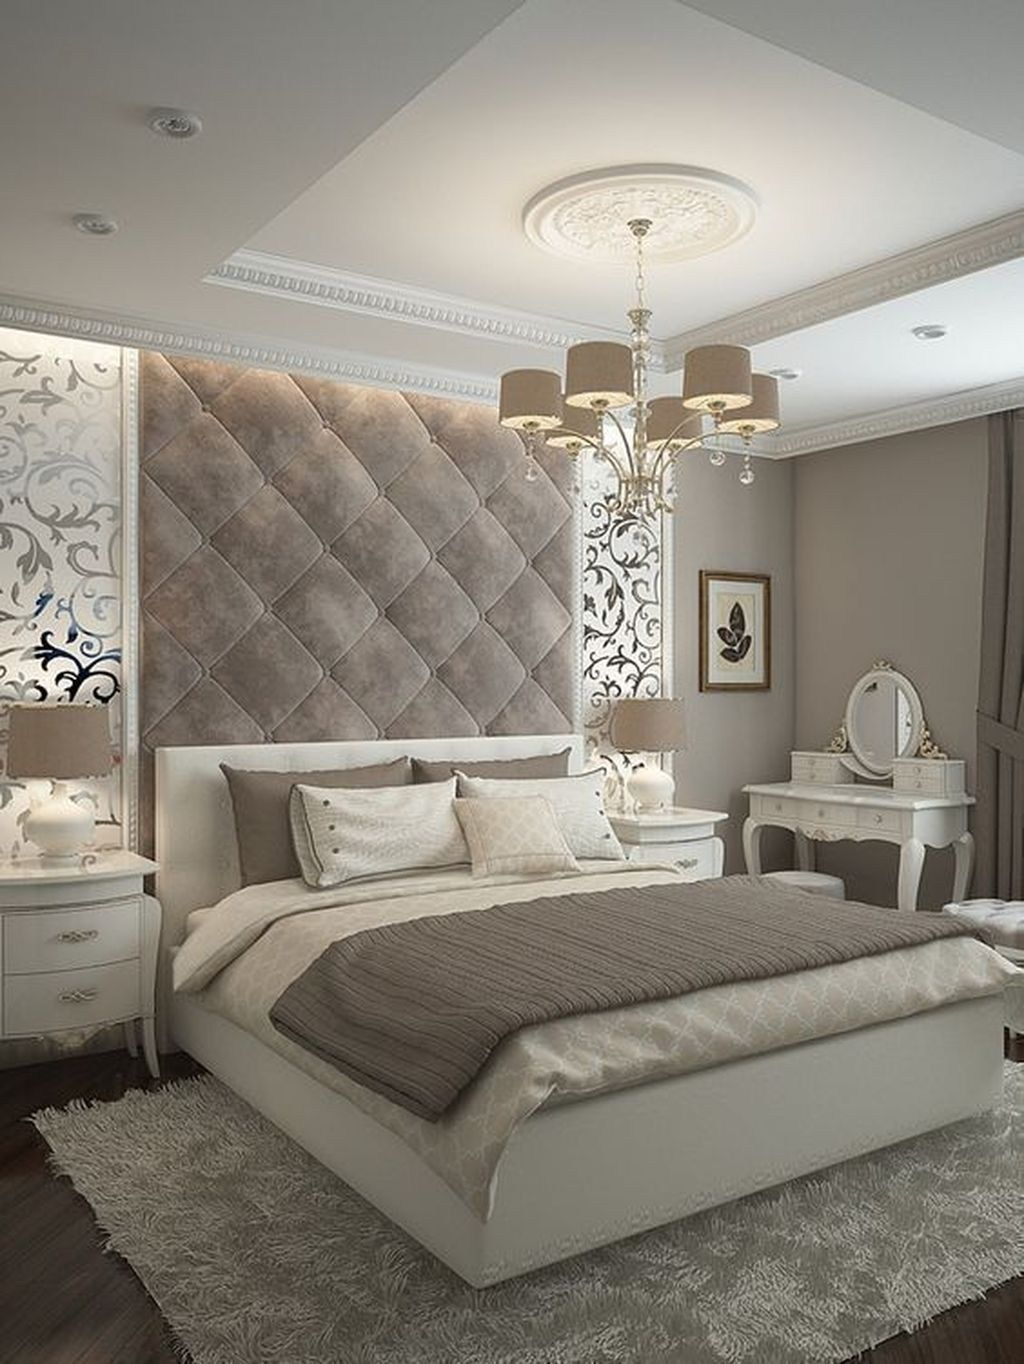 20 fancy bedroom design ideas to get quality sleep on dreamy luxurious master bedroom designs and decor ideas id=42931